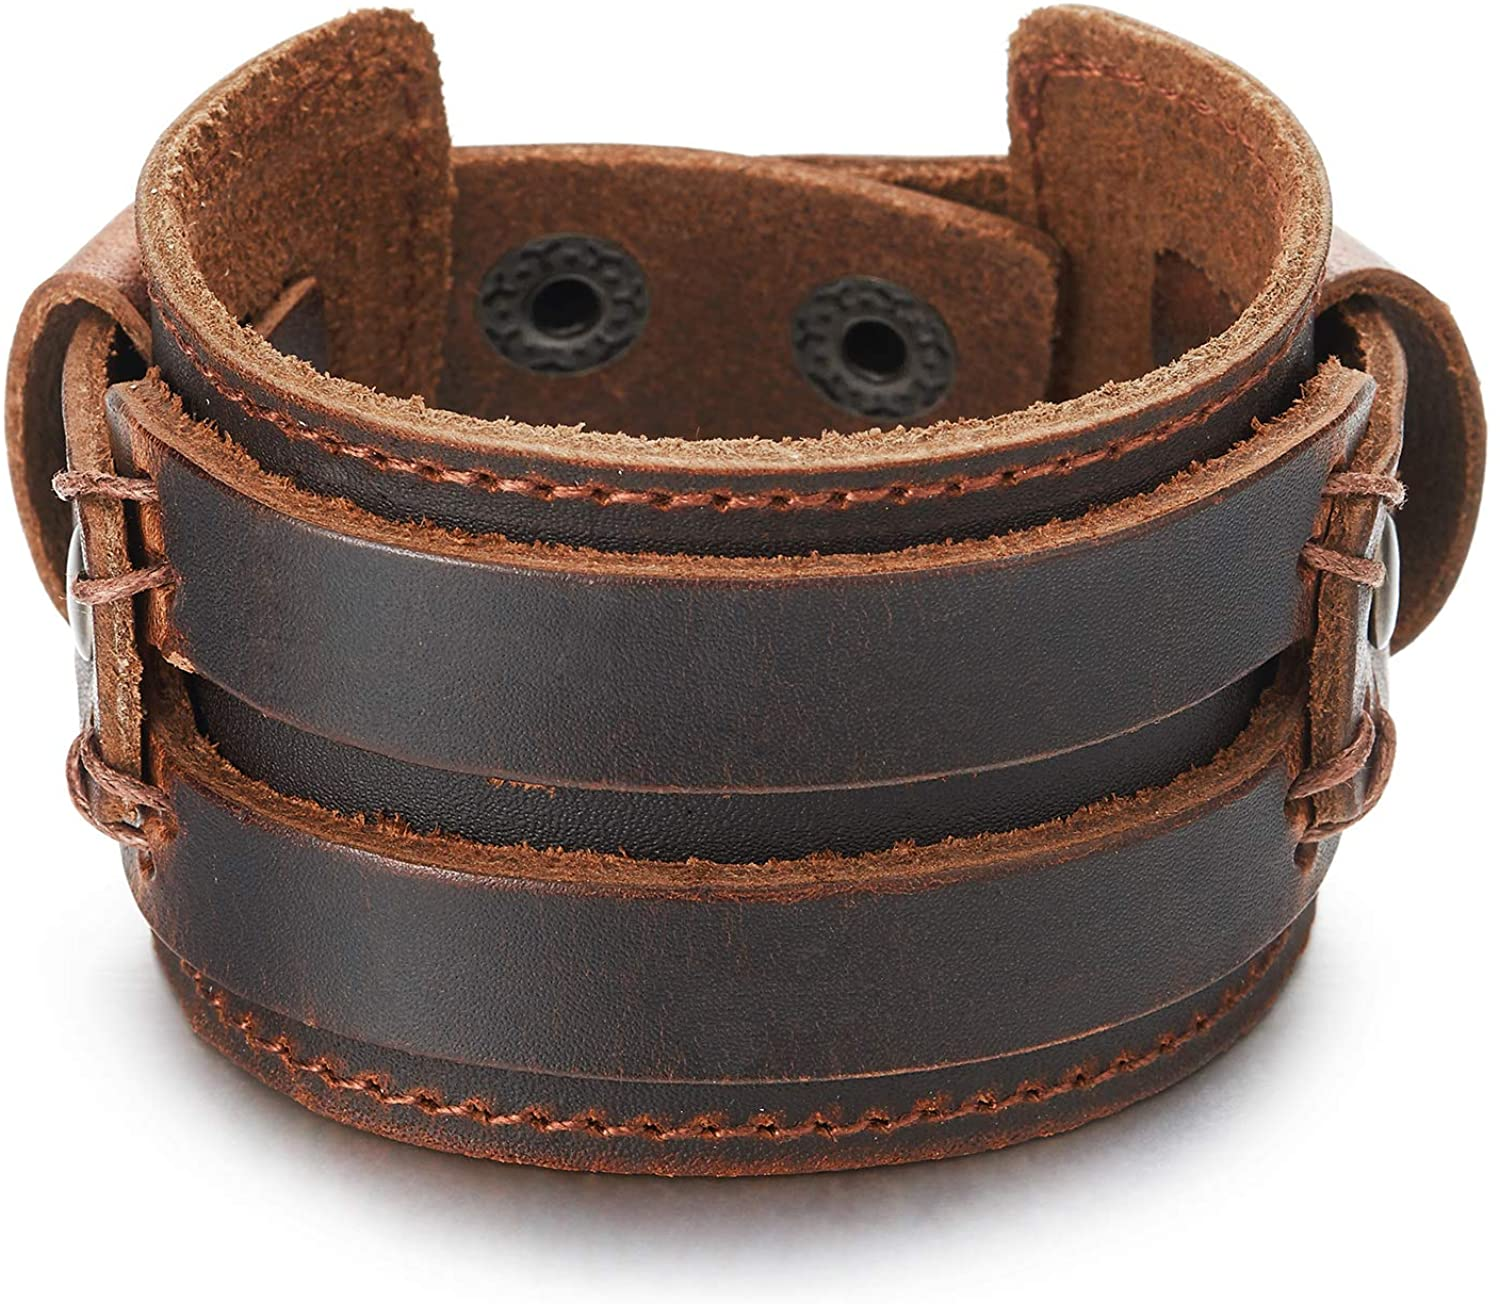 COOLSTEELANDBEYOND Metallic Genuine Leather Wristband Mens Wide Leather Bracelet with Snap Button